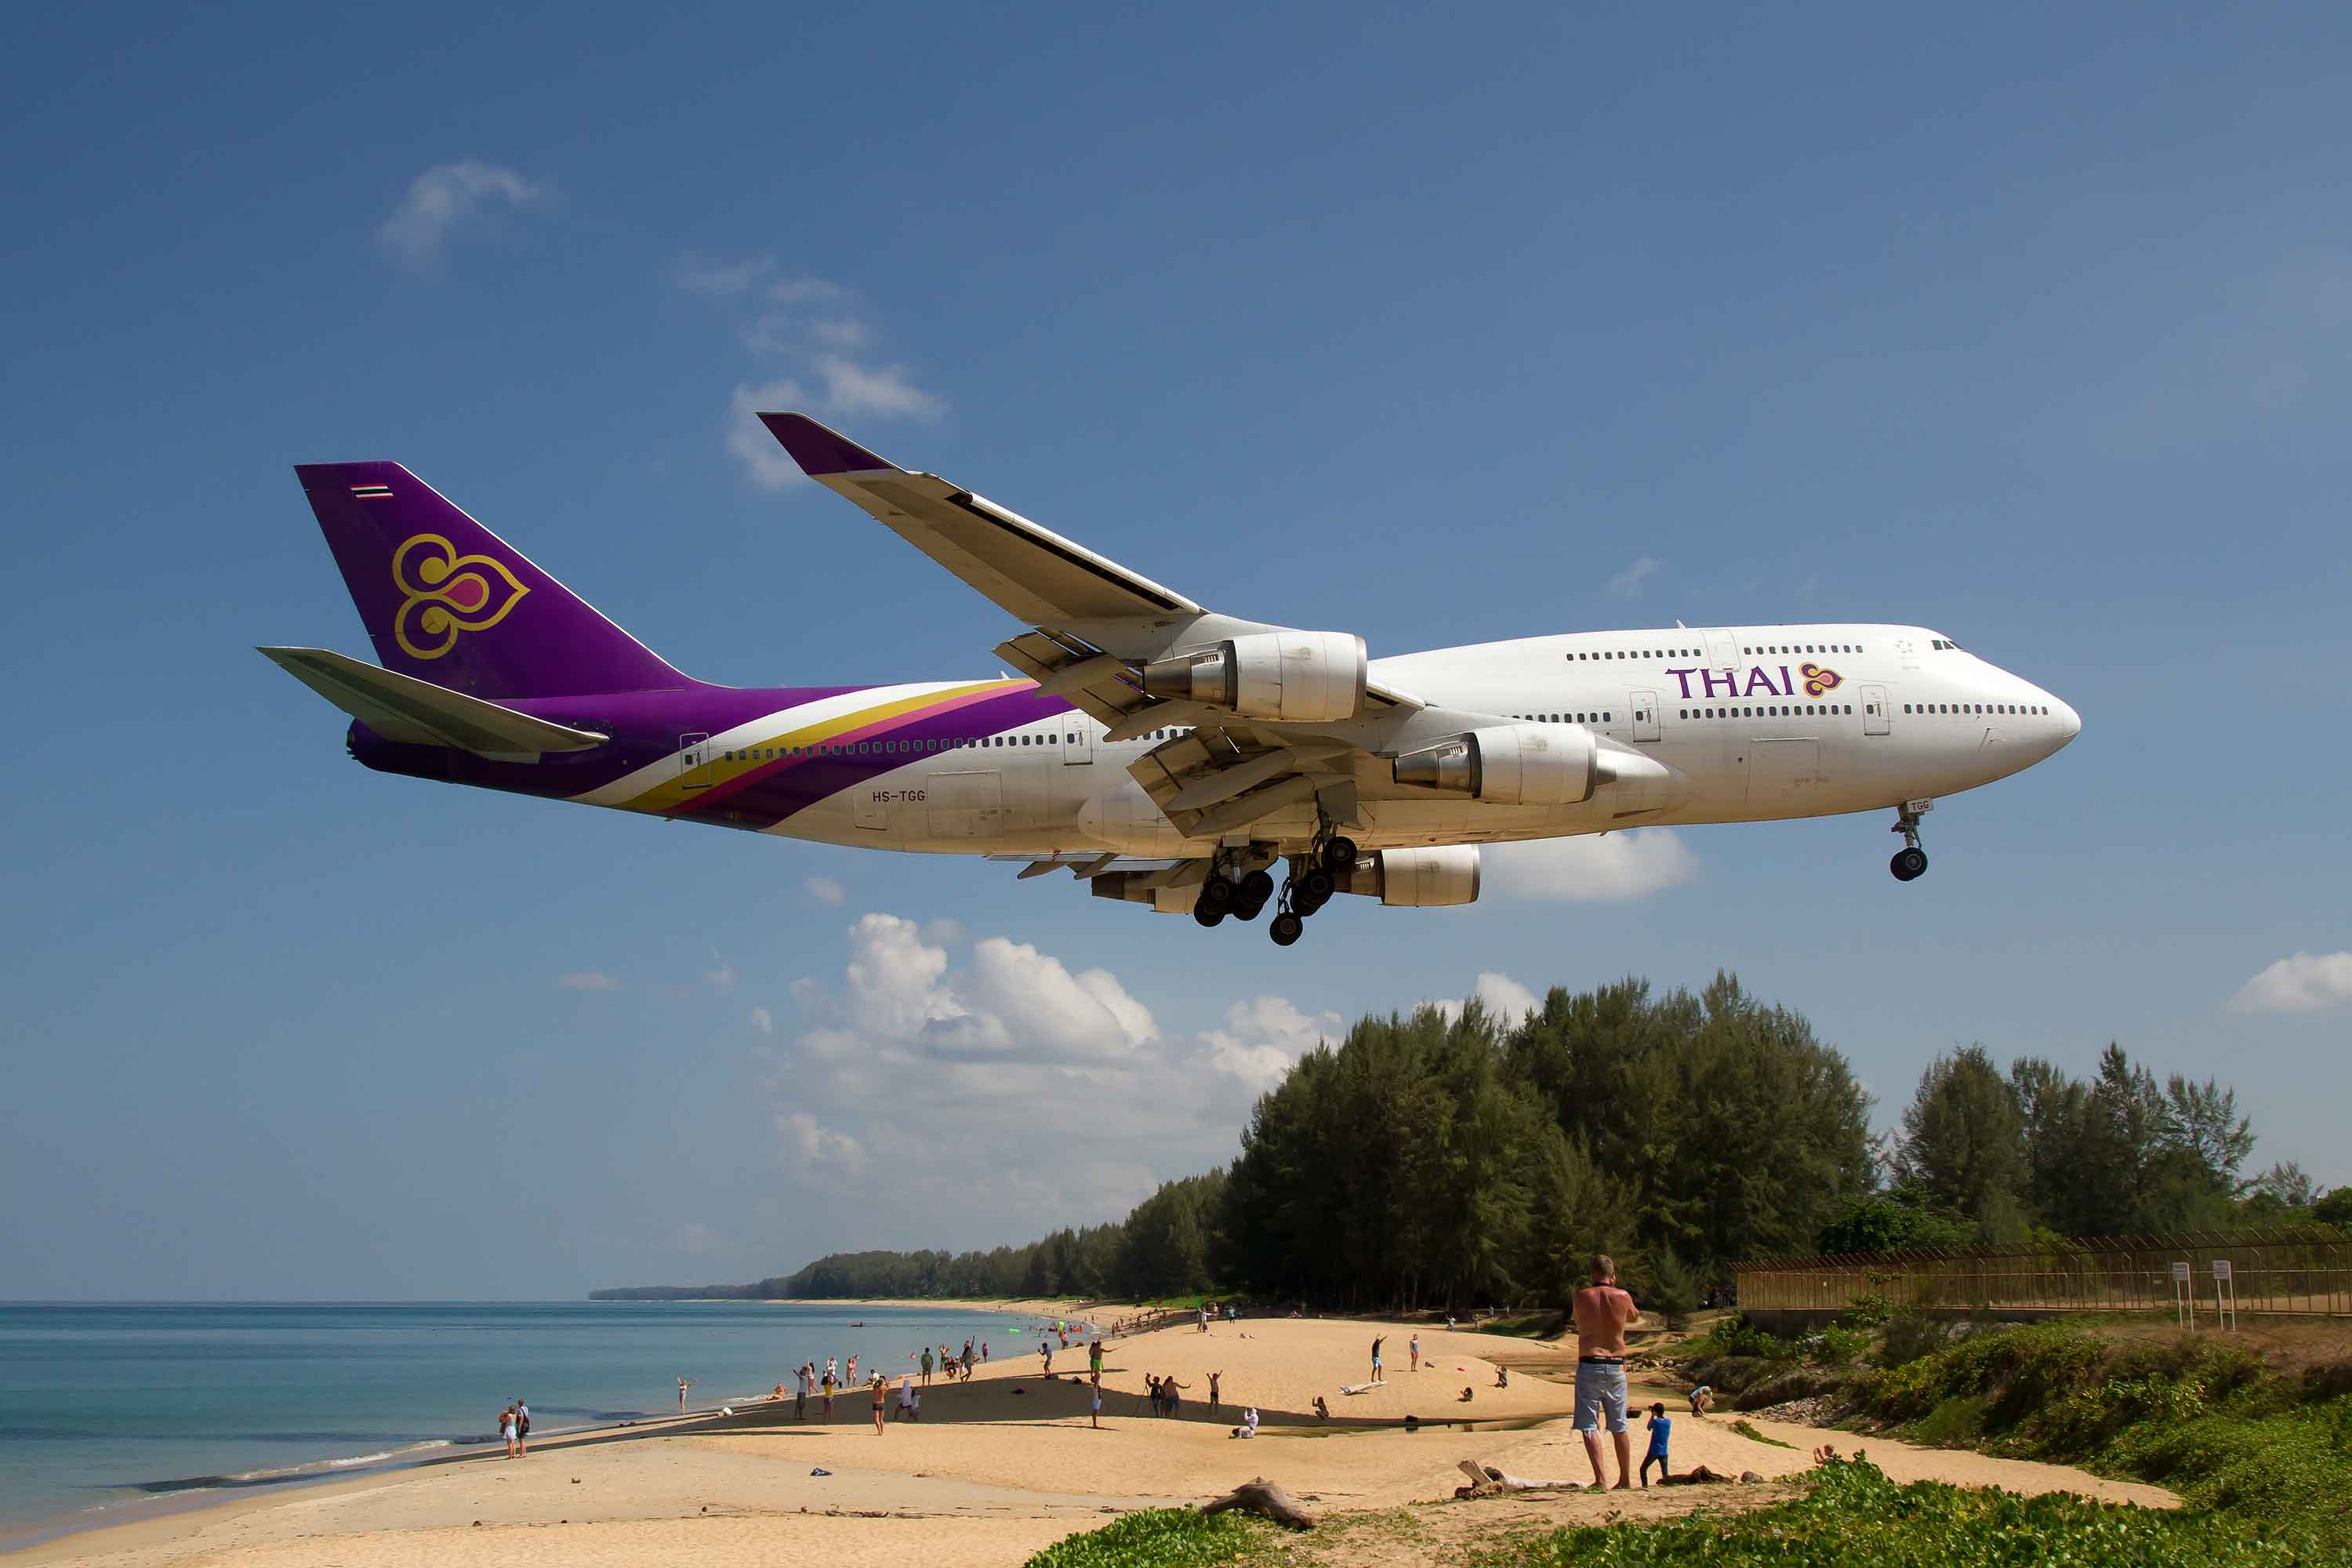 Plane spotting at Mai Khao Beach in Phuket, Thailand: How safe is it